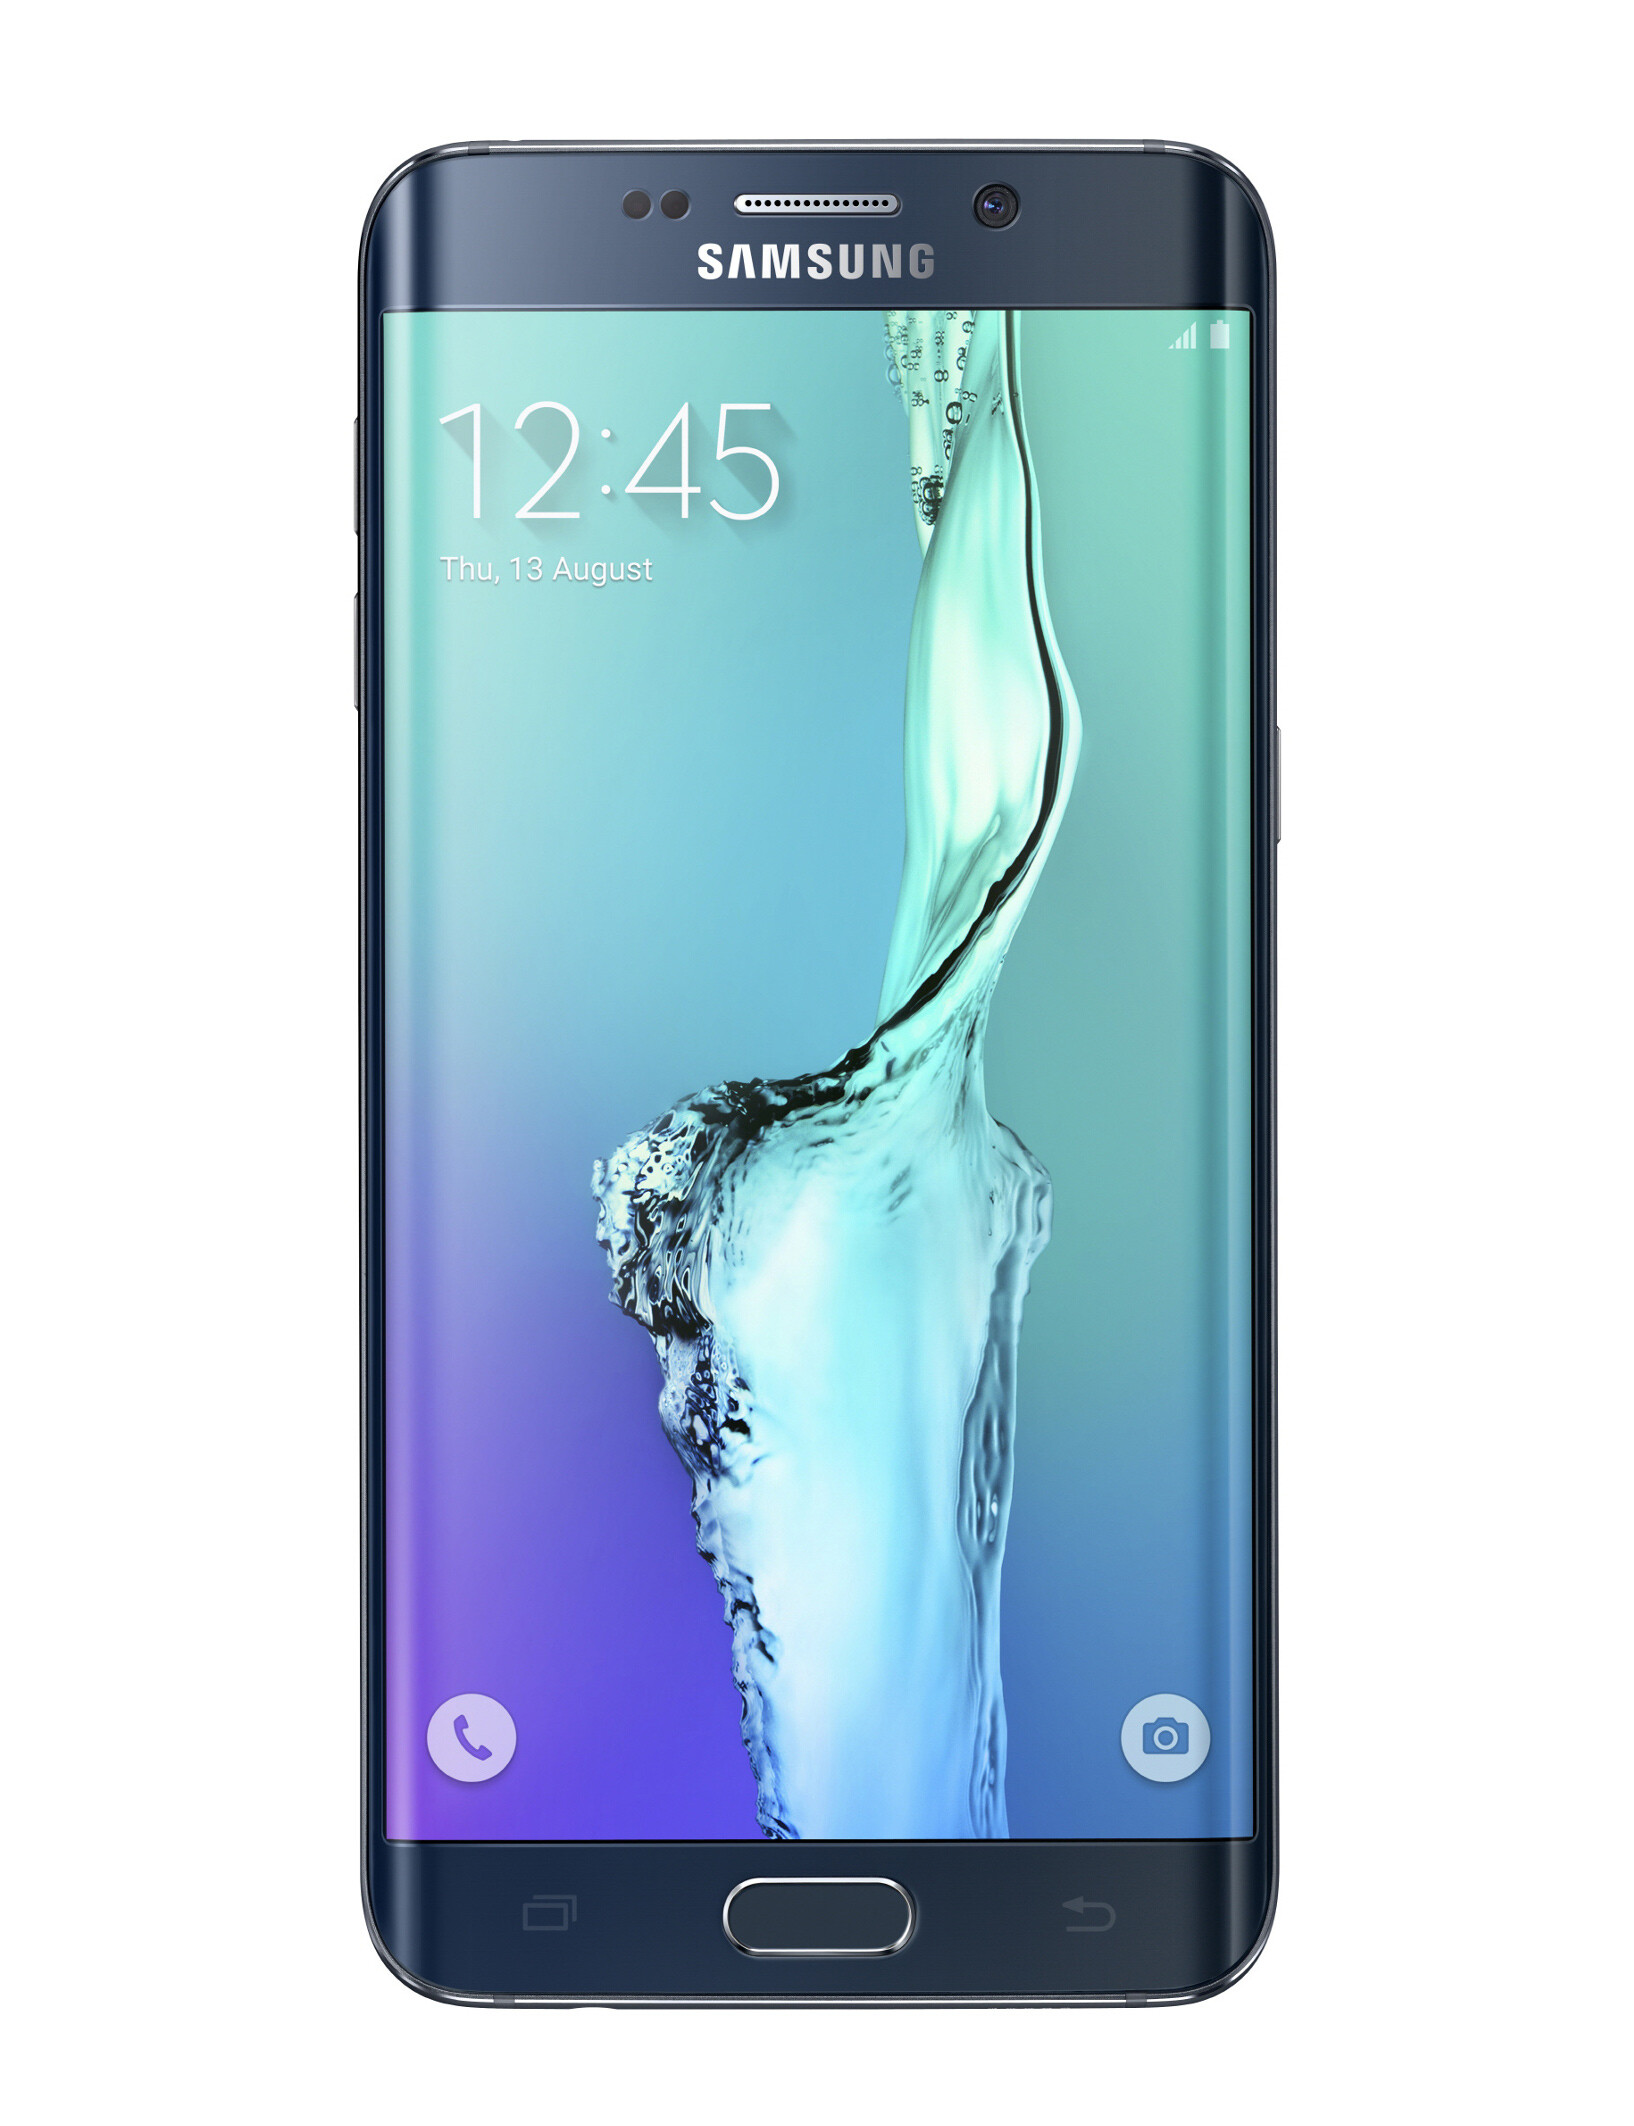 samsung galaxy s6 edge specs. Black Bedroom Furniture Sets. Home Design Ideas